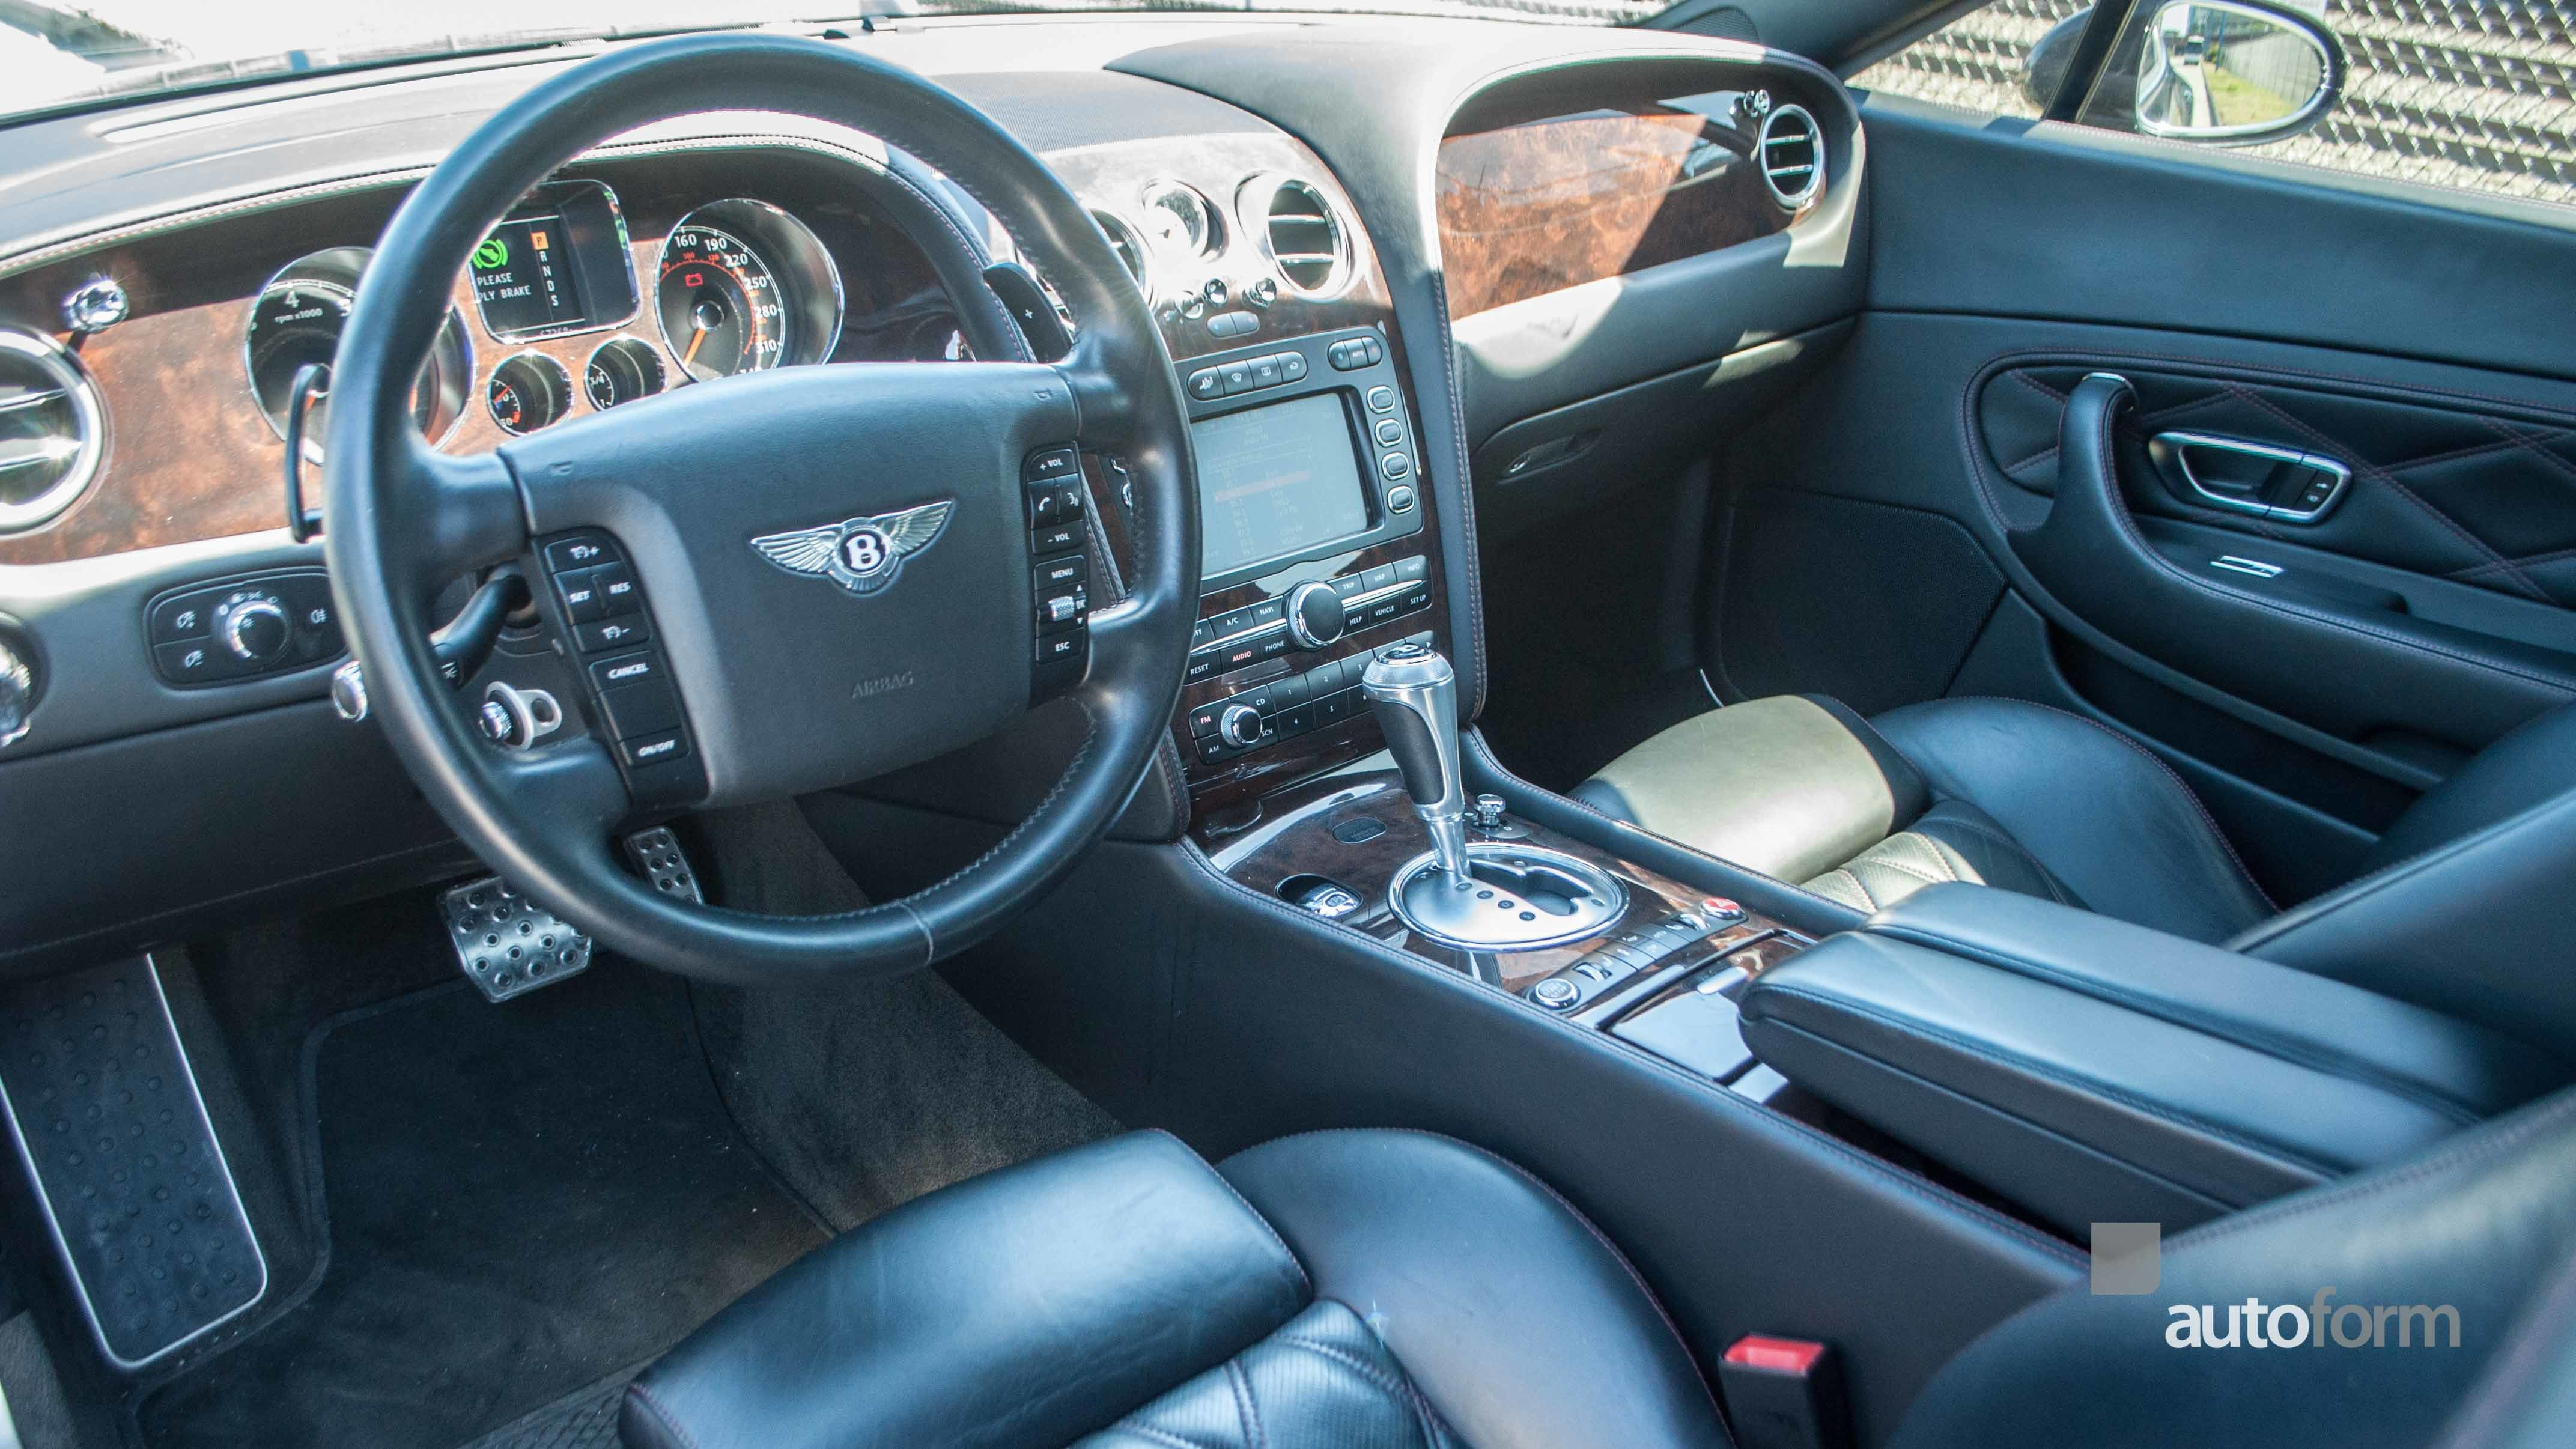 las llc carriage cpe royal continental photos gt bentley view price vegas additional nv inventory